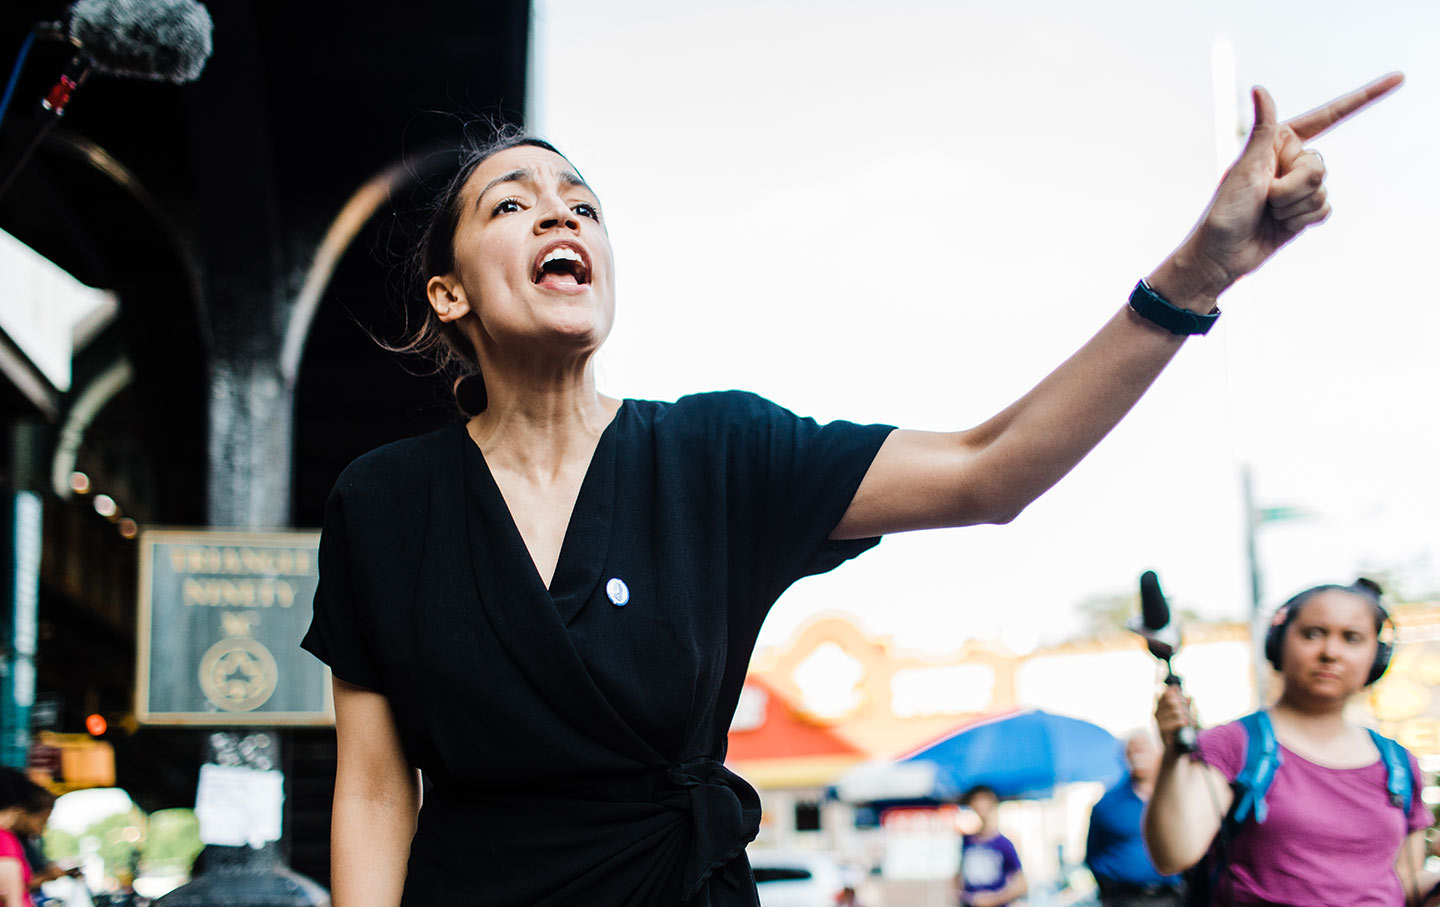 Alexandria Ocasio-Cortez on the campaign trail